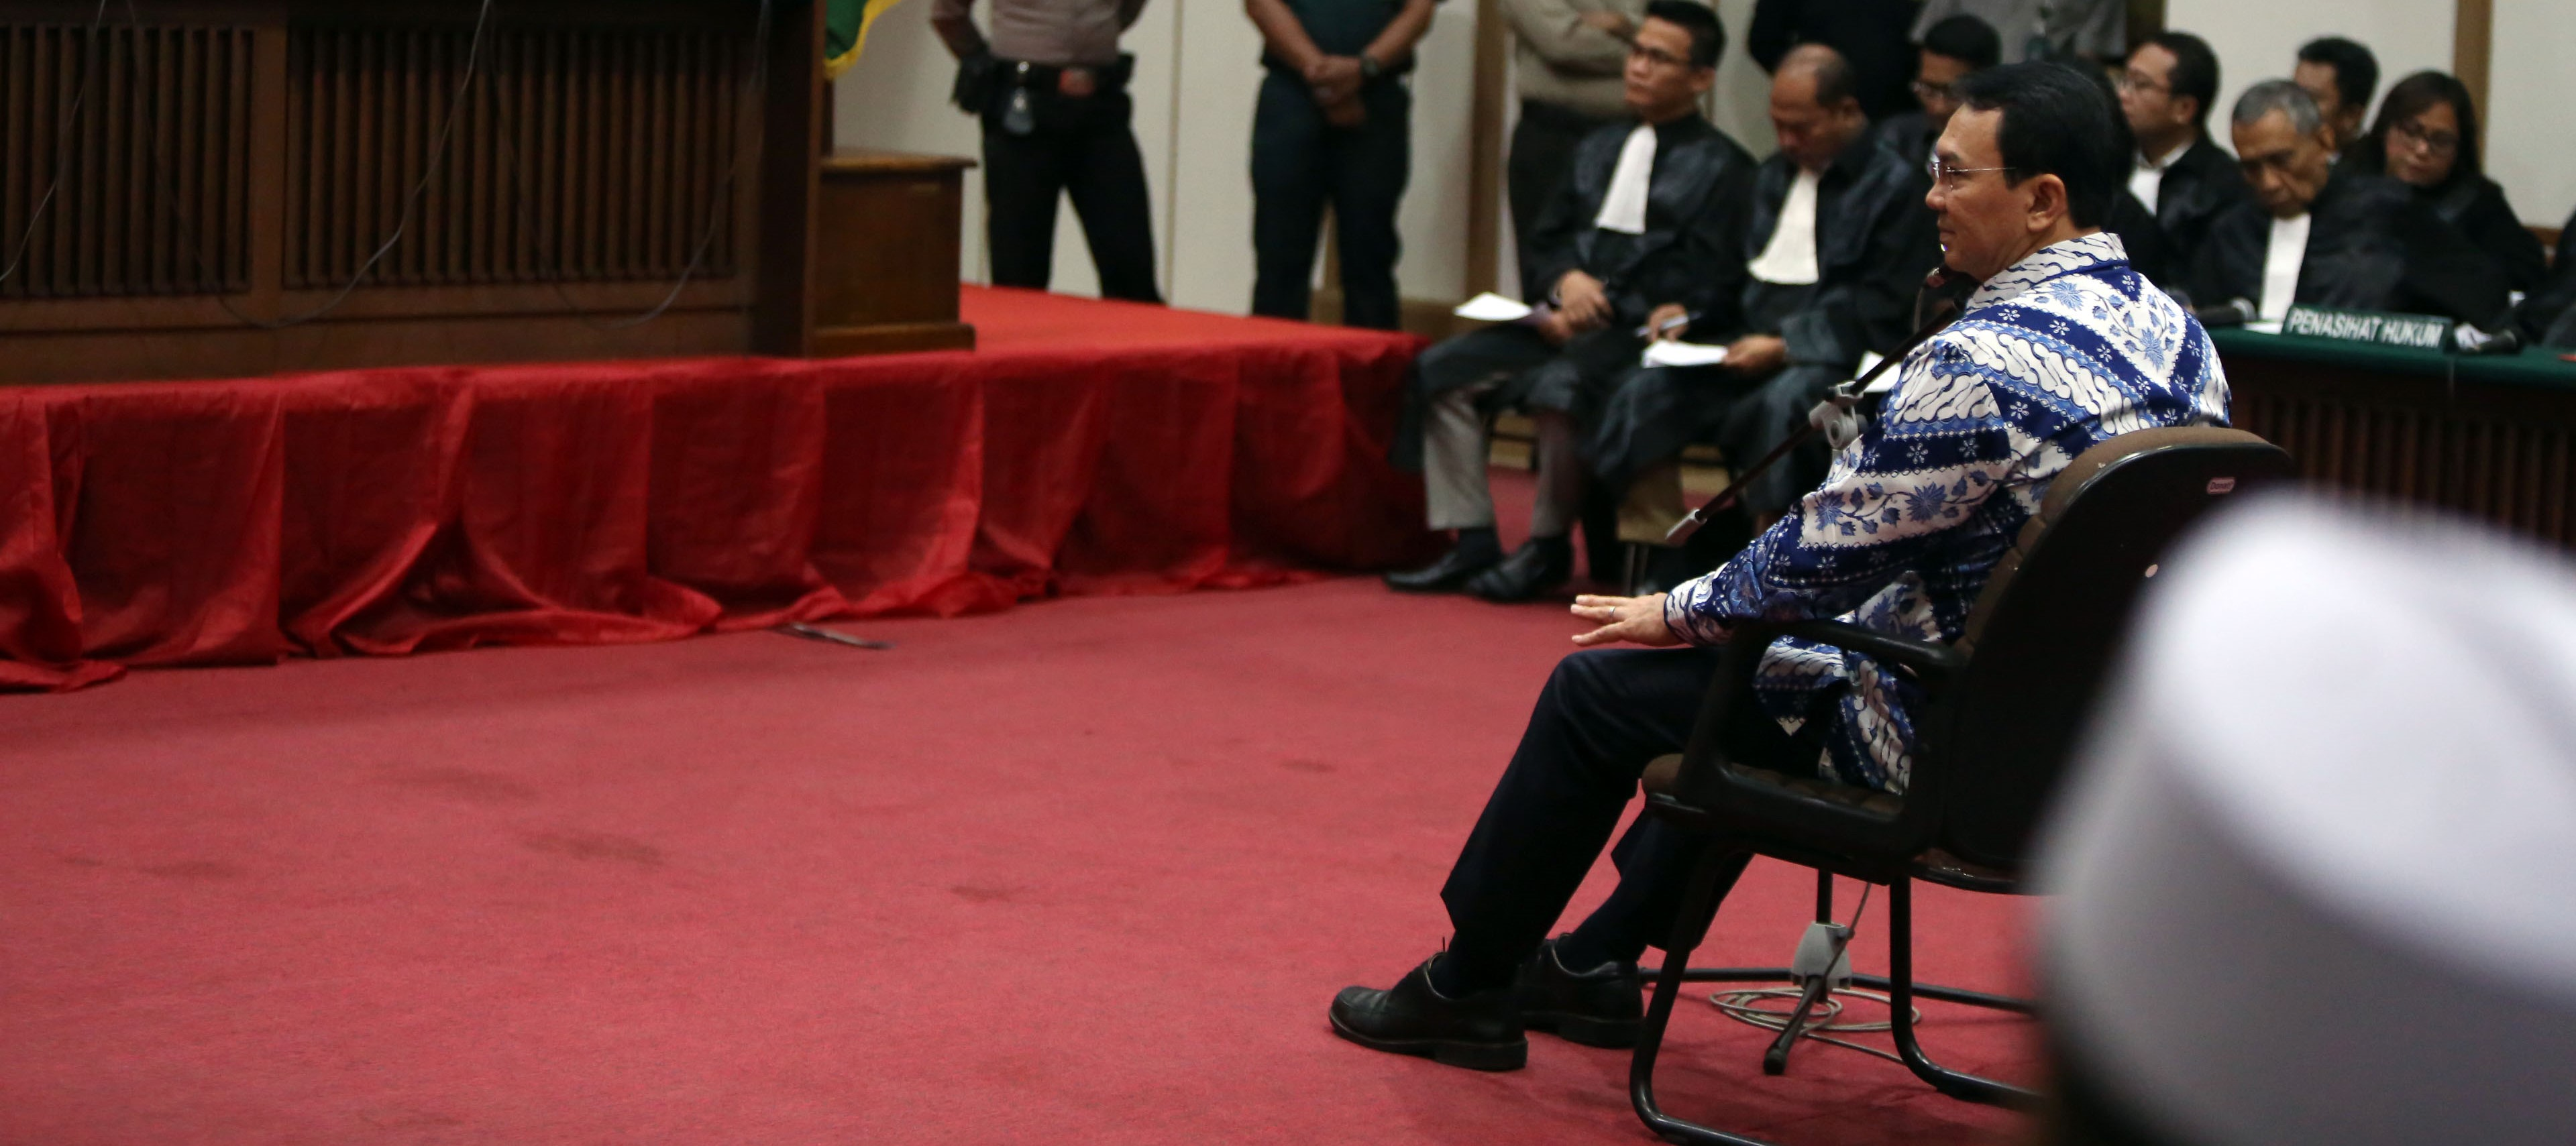 Ahok in court for his verdict and sentencing, May 2017 (Photo: Getty Images/Barcroft Media/Jefta Images)